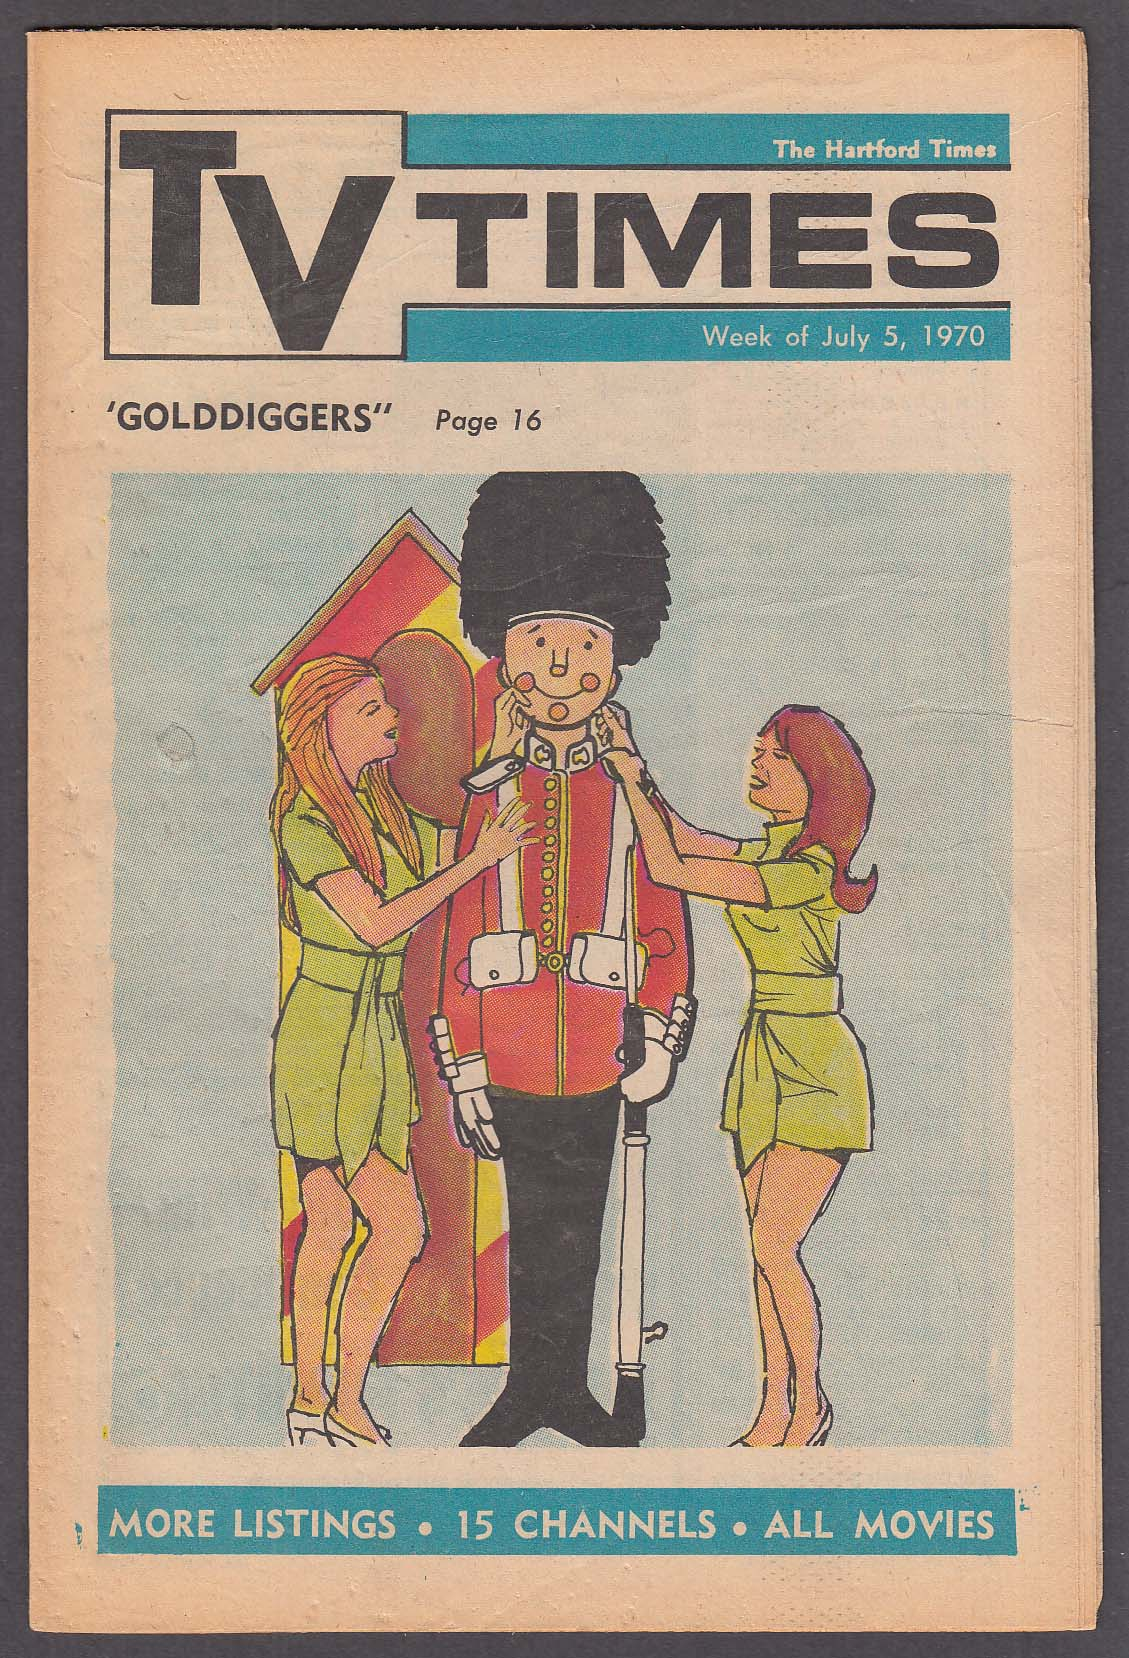 Image for TV TIMES David Frost, Golddiggers, Joanne Worley 7/5 1970 Hartford Times